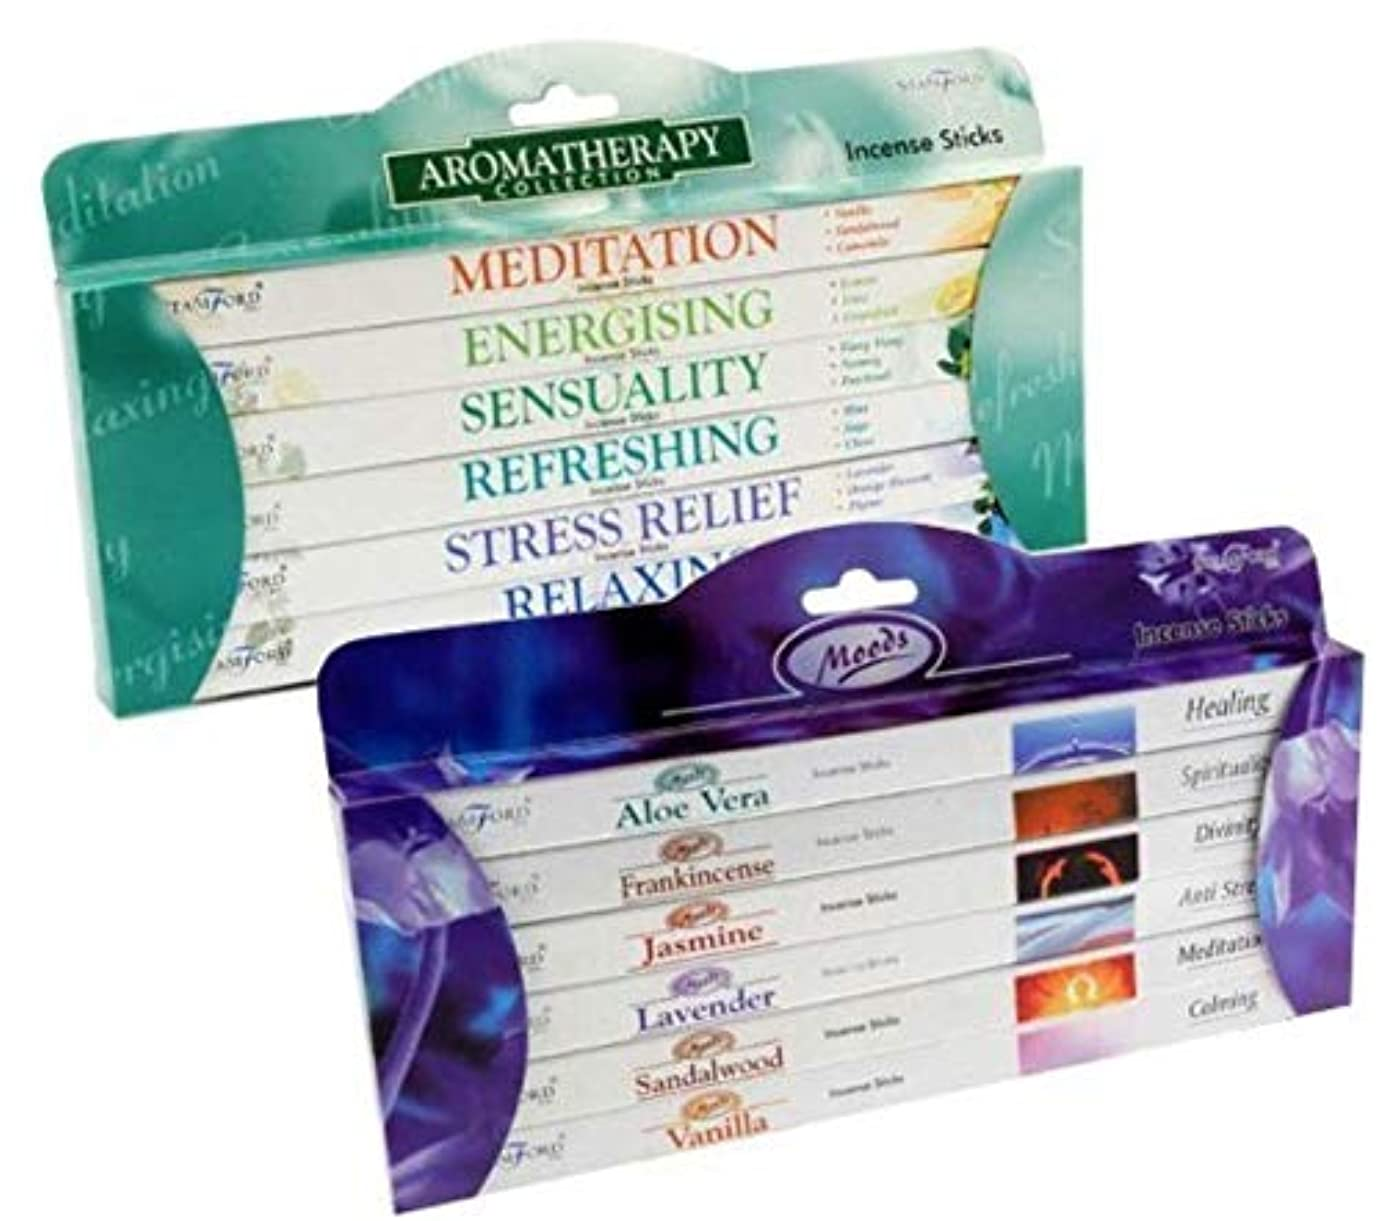 放課後有料ずらすValue Gift Set of 96 Incense Sticks - Moods and Aromatherapy by Stamford by Stamford and Tulasi